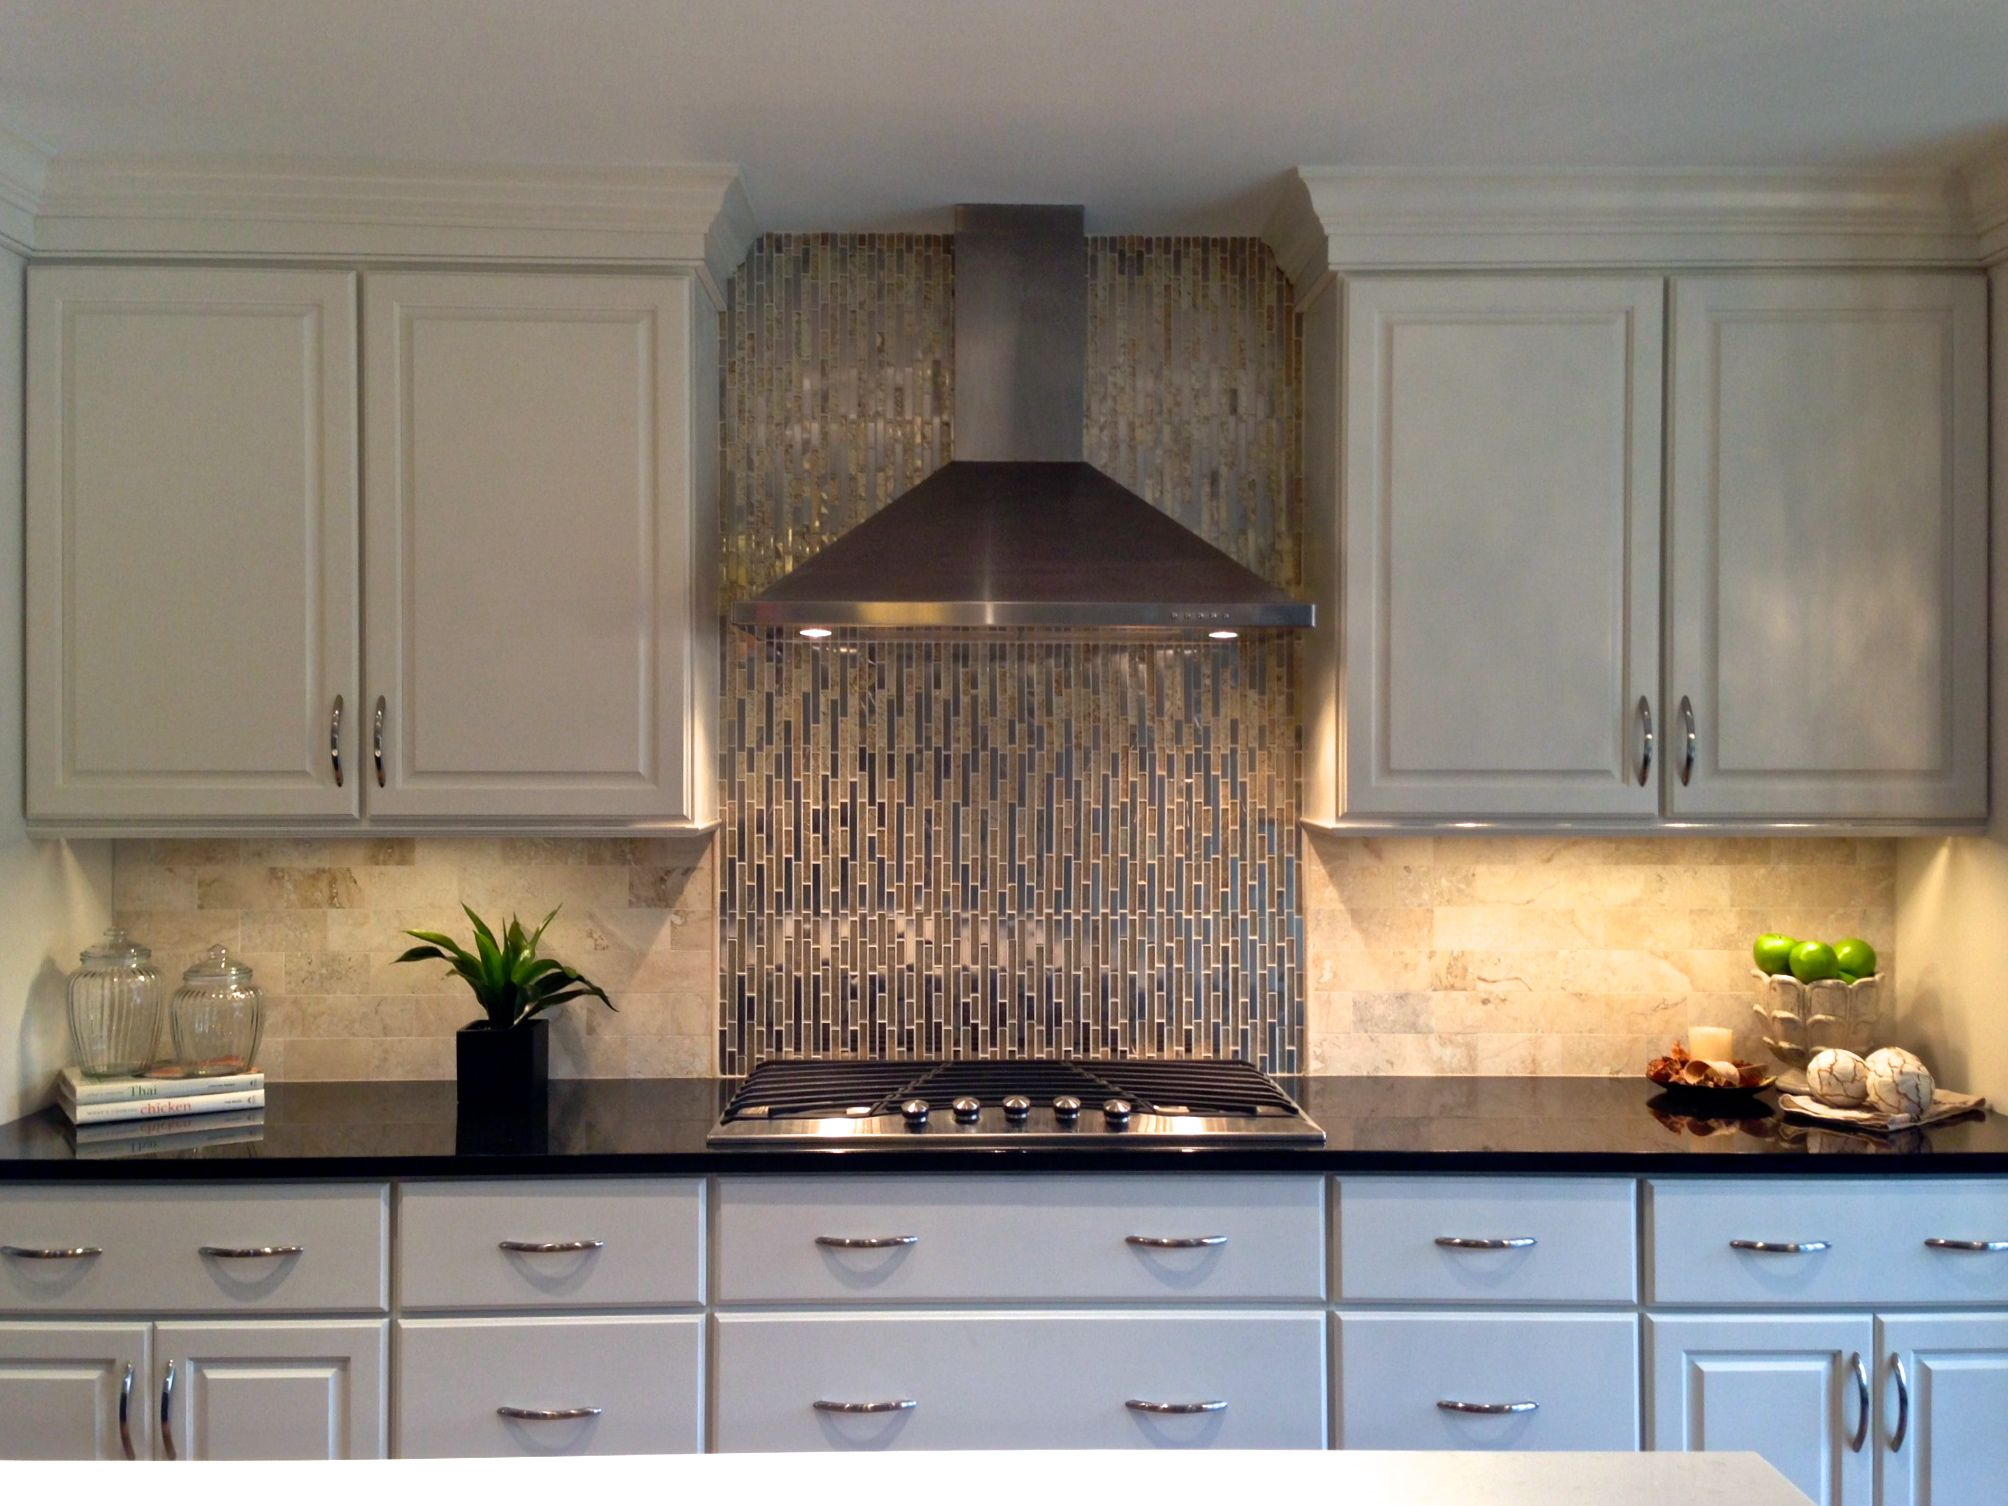 n calabria under zephyr style range lifestyle cabinet view hood hoods pro canopy b